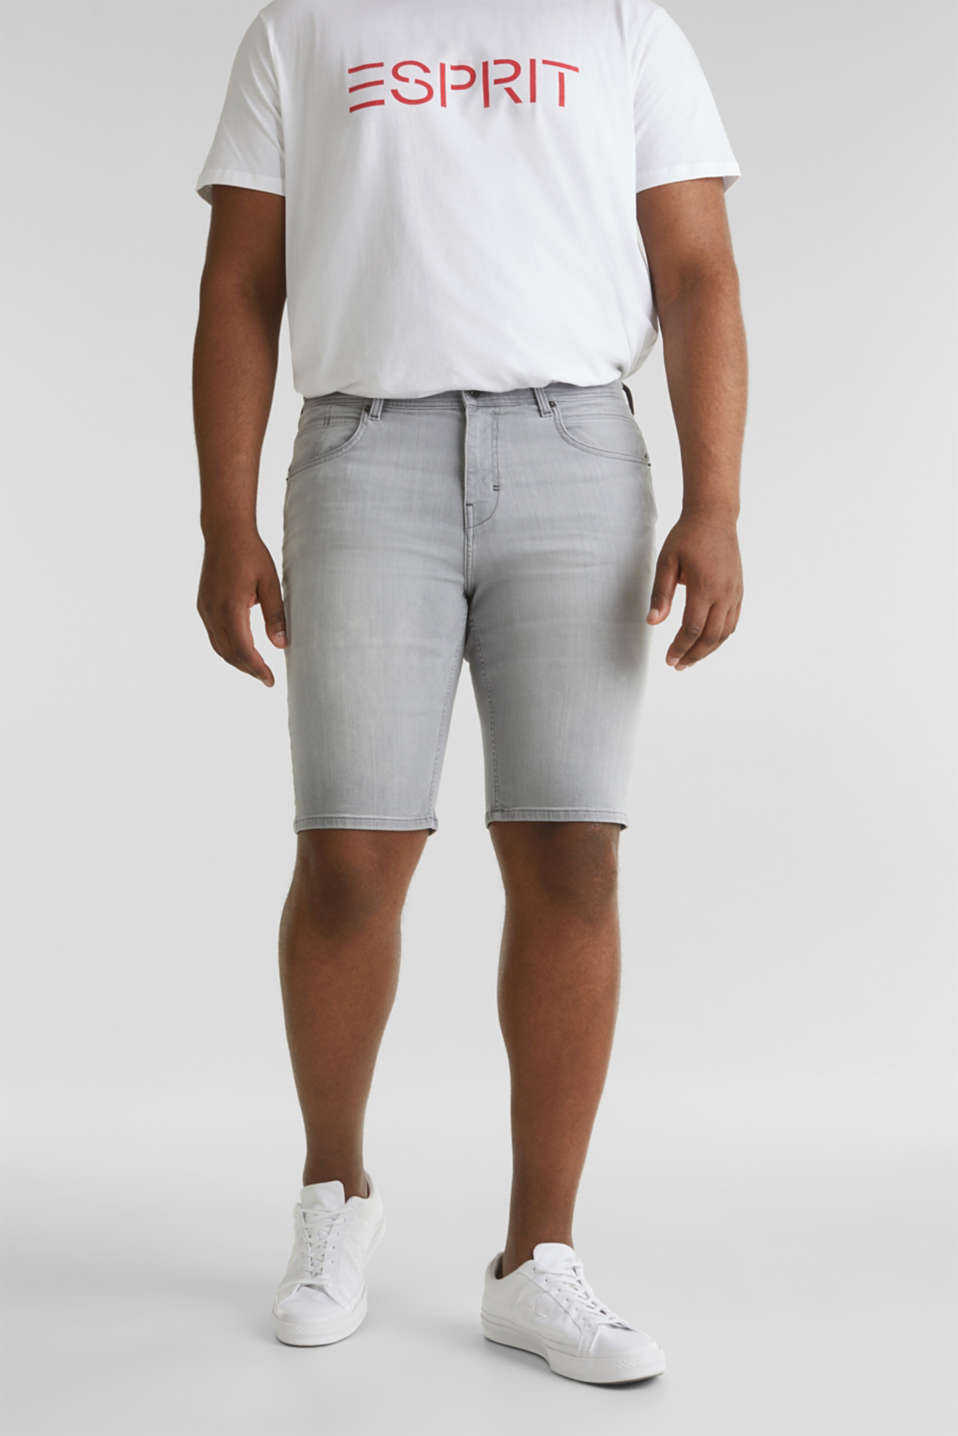 Esprit - Denim-Shorts im bleached Look